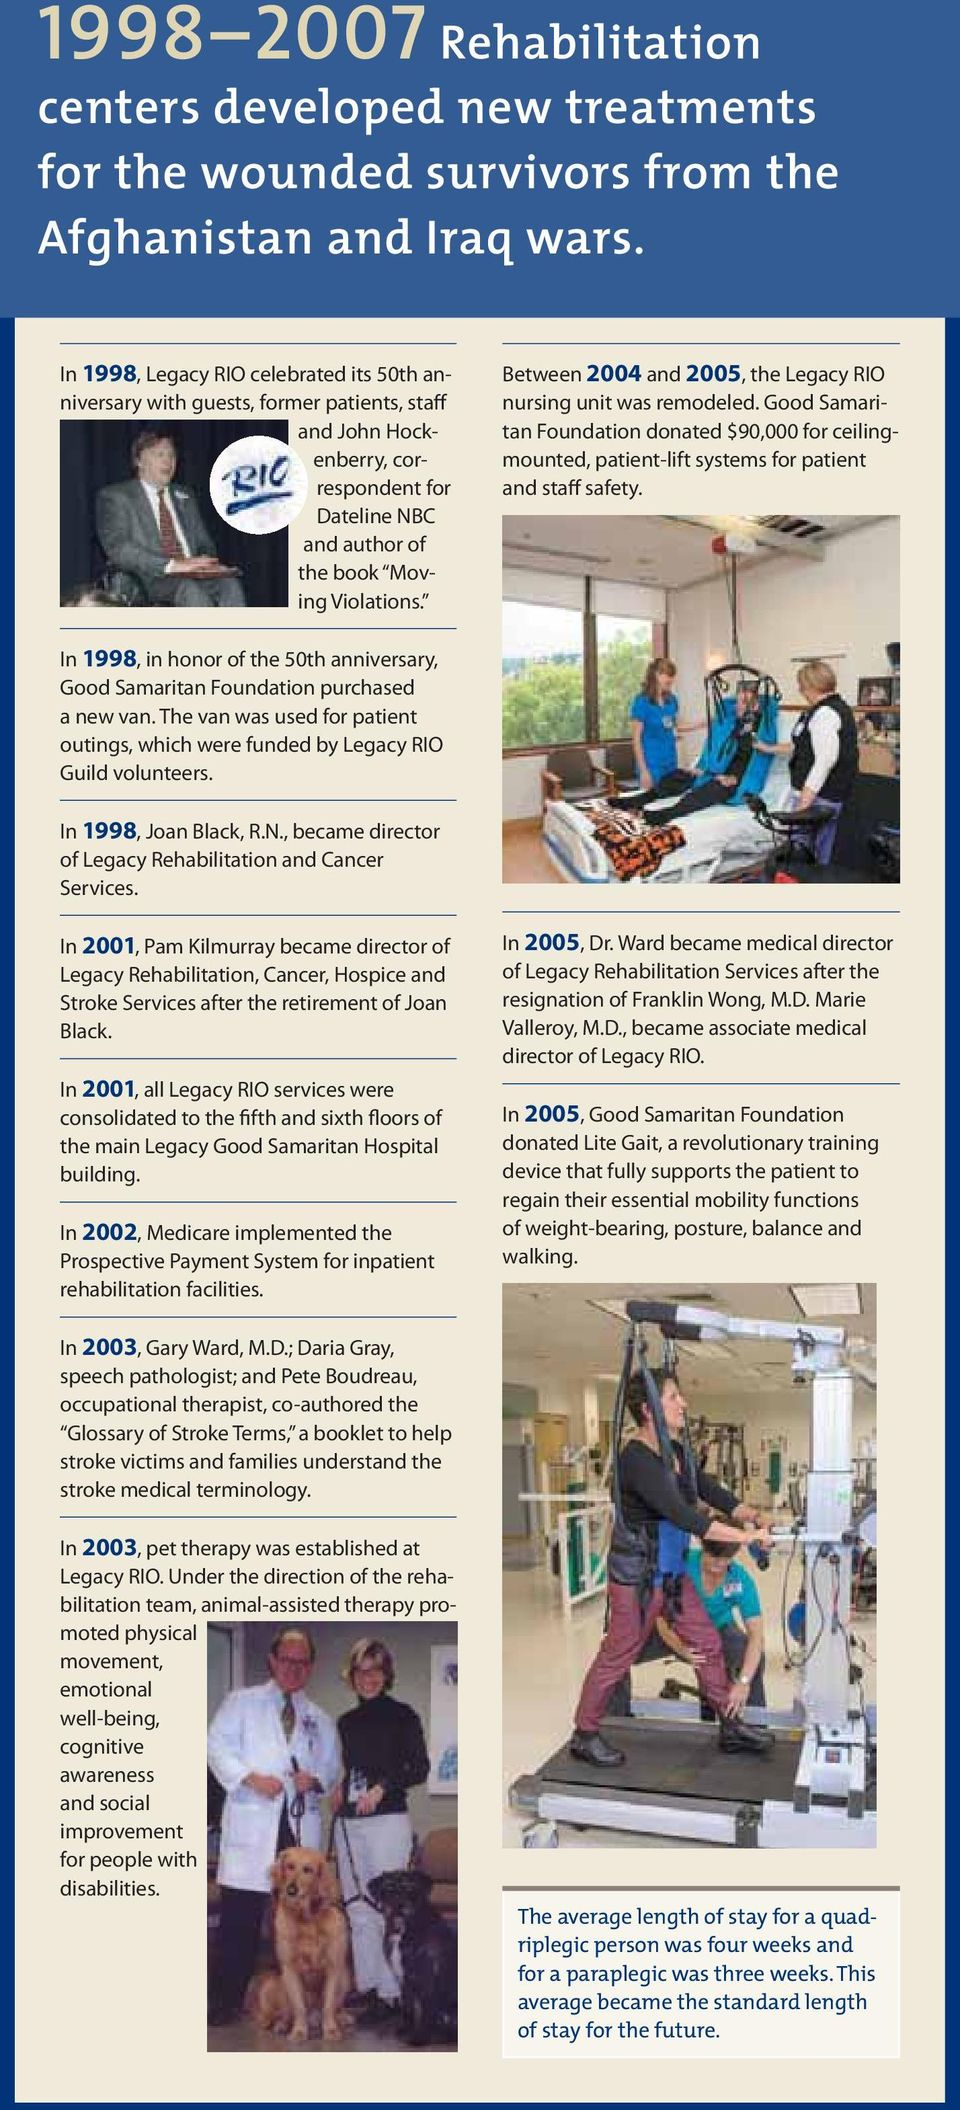 Between 2004 and 2005, the Legacy RIO nursing unit was remodeled. Good Samaritan Foundation donated $90,000 for ceilingmounted, patient-lift systems for patient and staff safety.